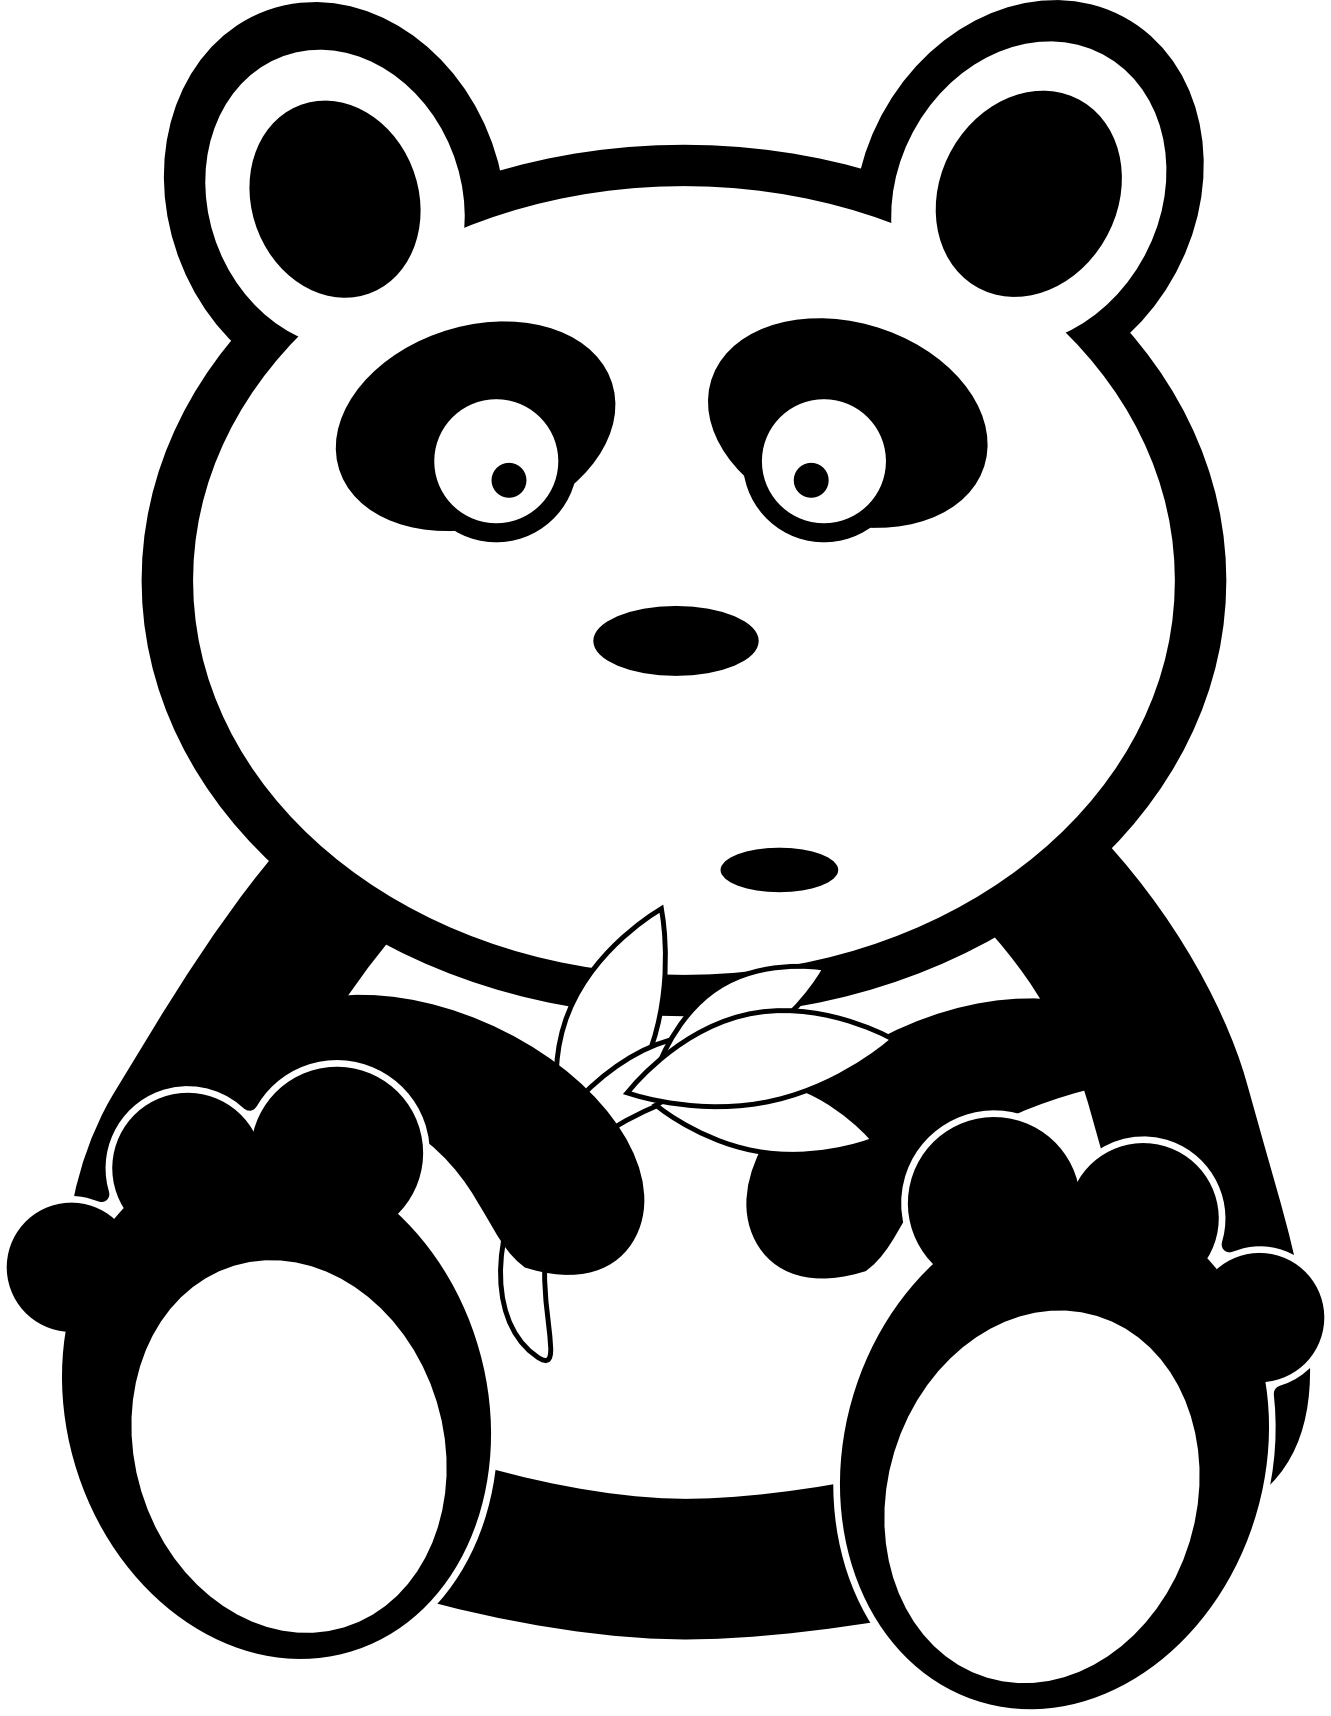 image free stock Panda bear clipart black and white. Cute free images